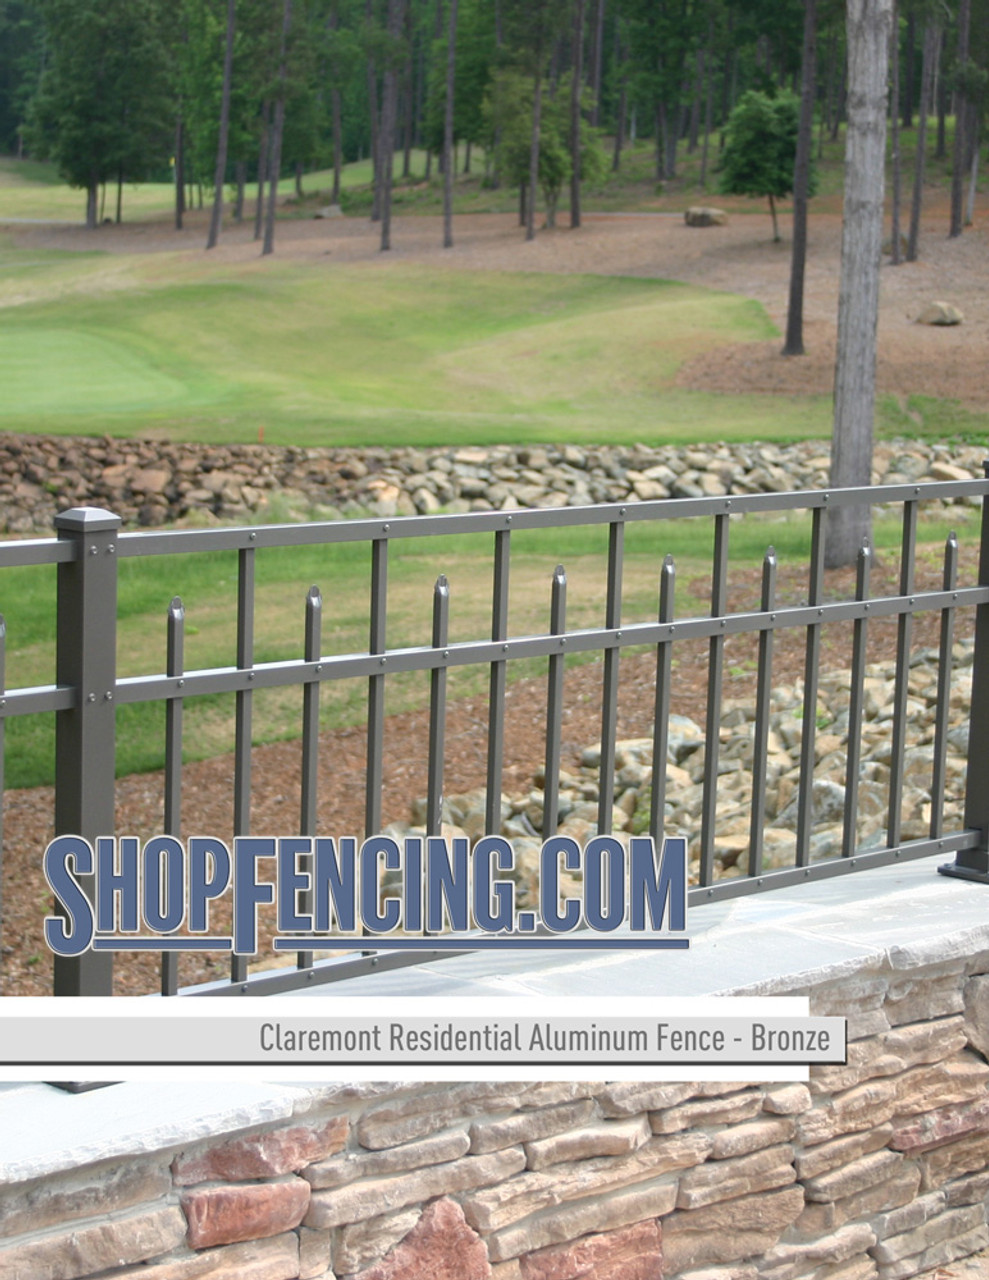 Bronze Residential Claremont Aluminum Fencing From ShopFencing.com